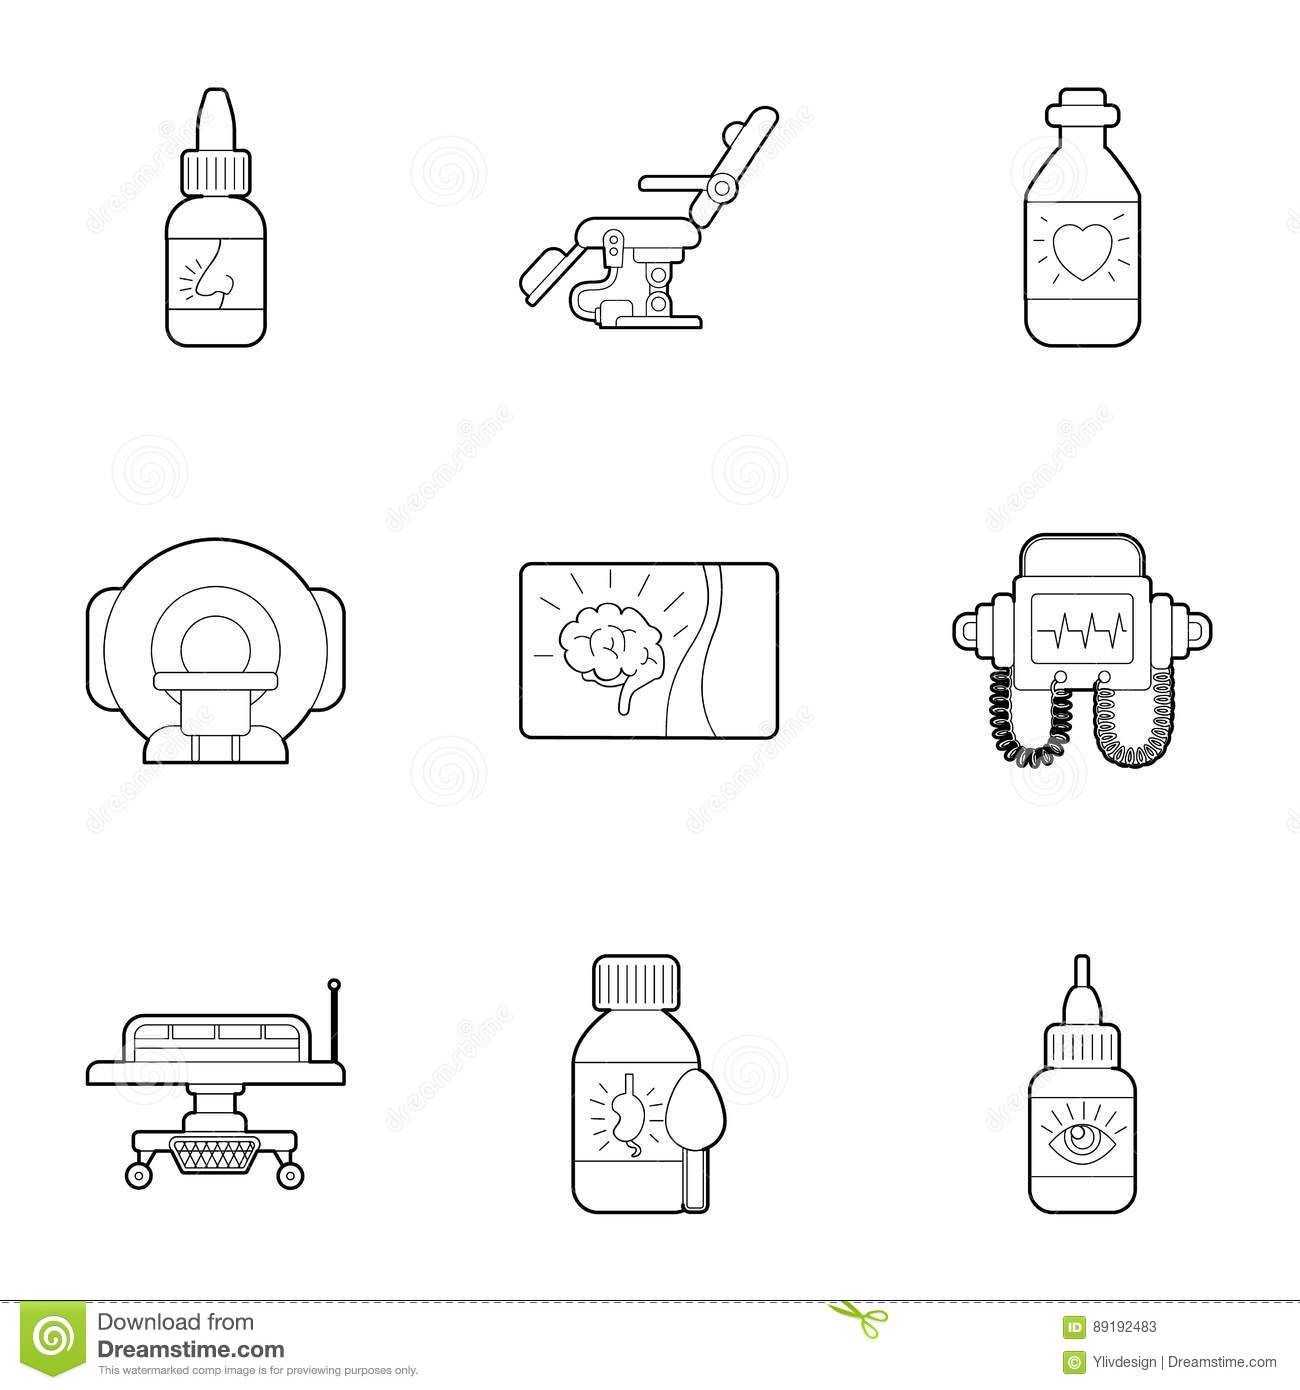 Diagnosis And Treatment Of Diseases Icons Set Stock Vector